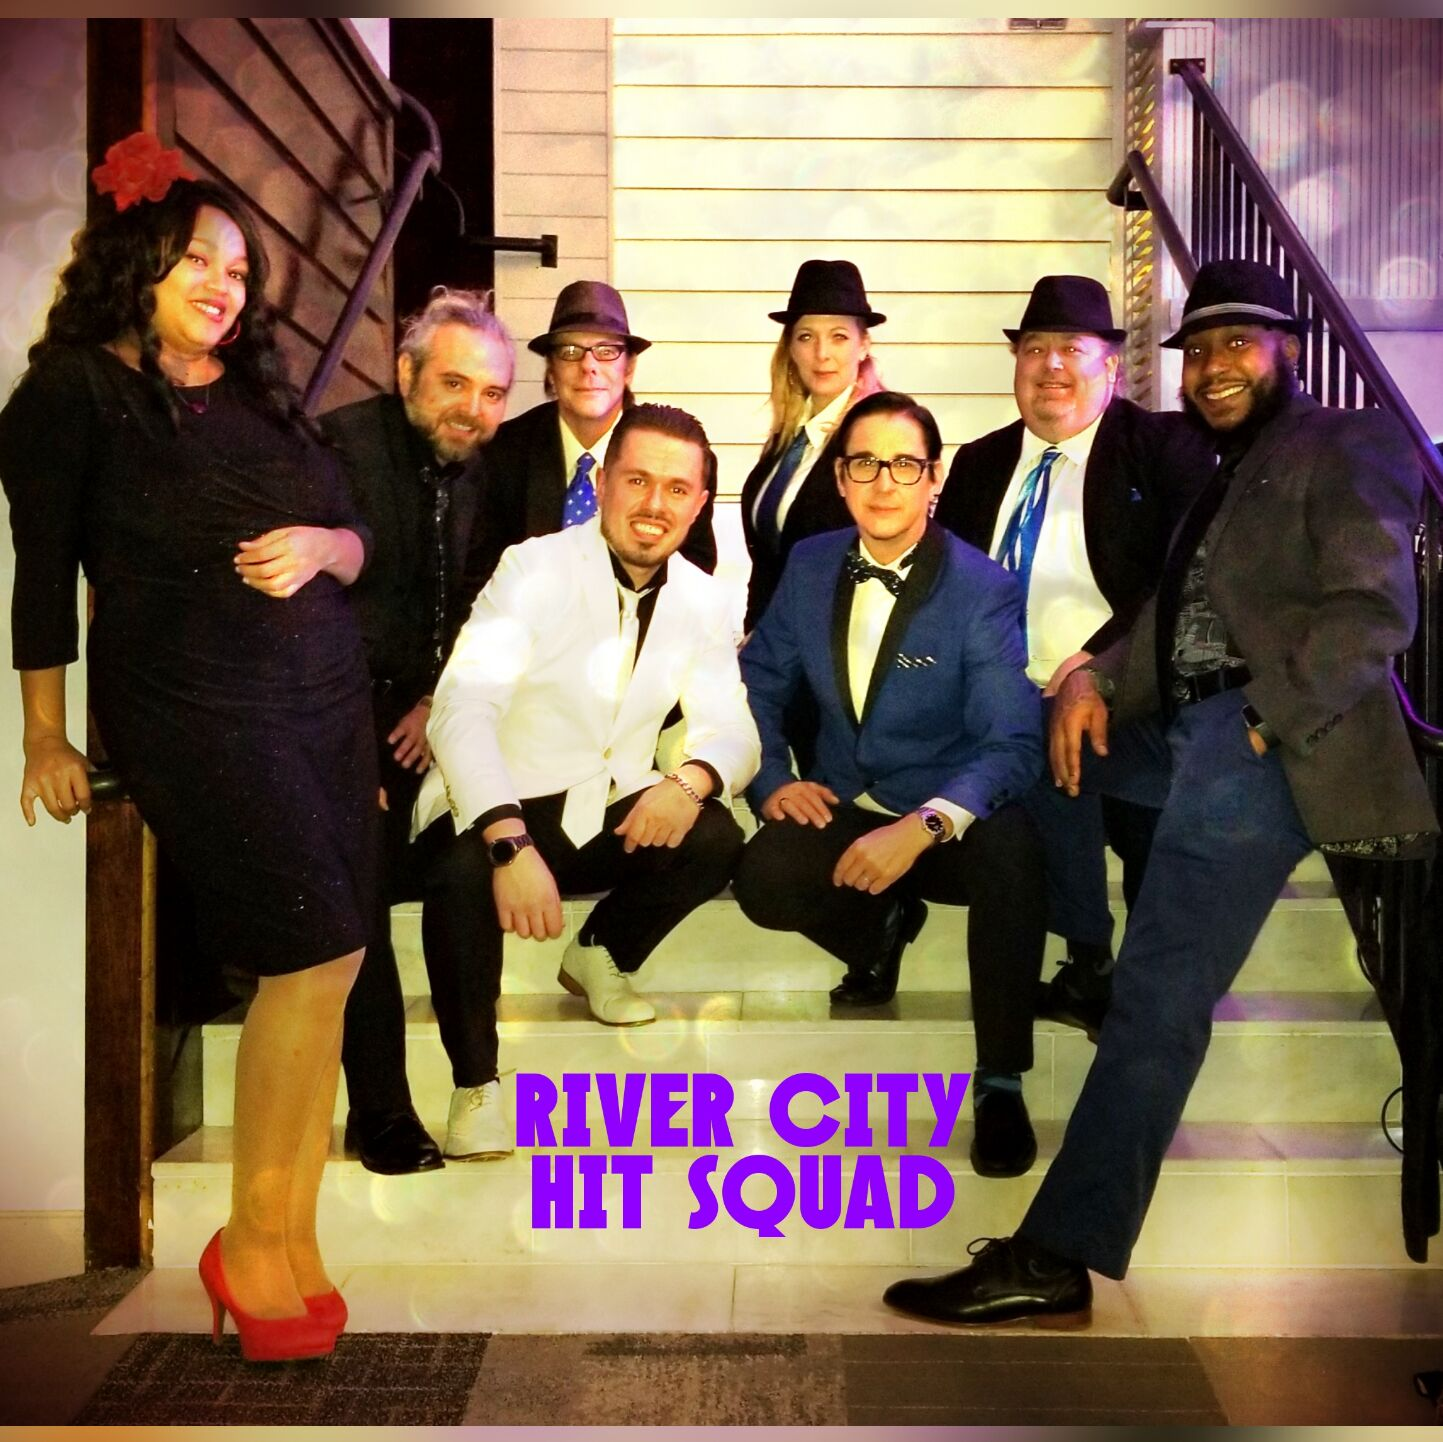 The River City Hit Squad